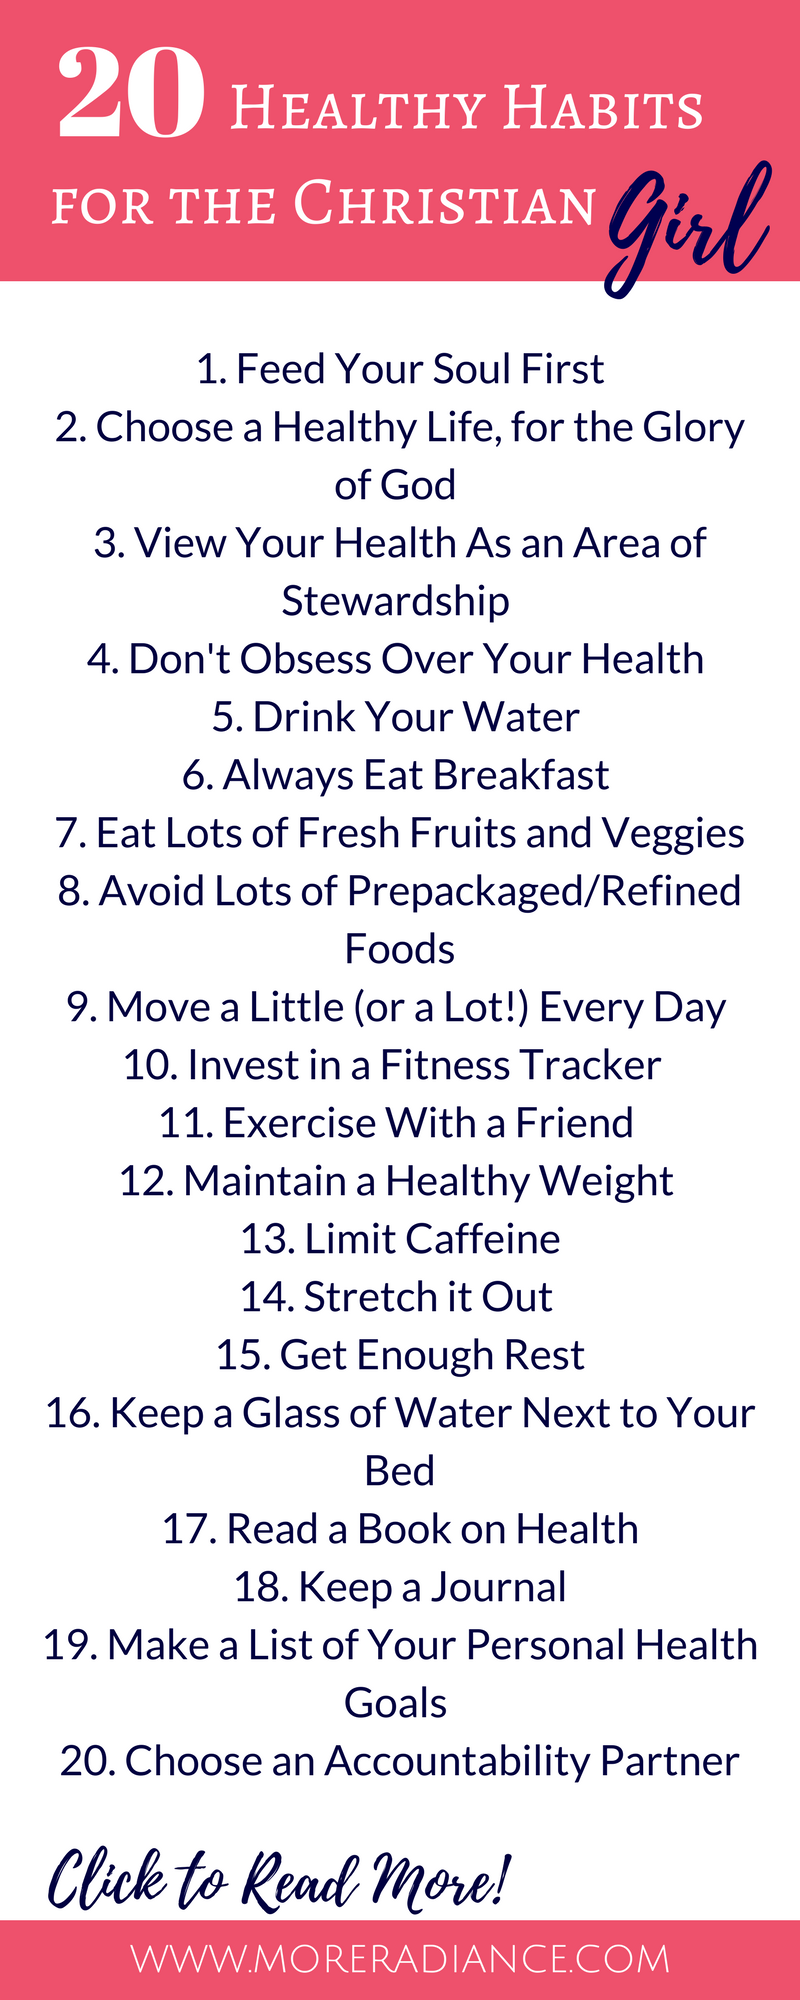 20 Healthy Habits for the Christian Girl - More Radiance Blog